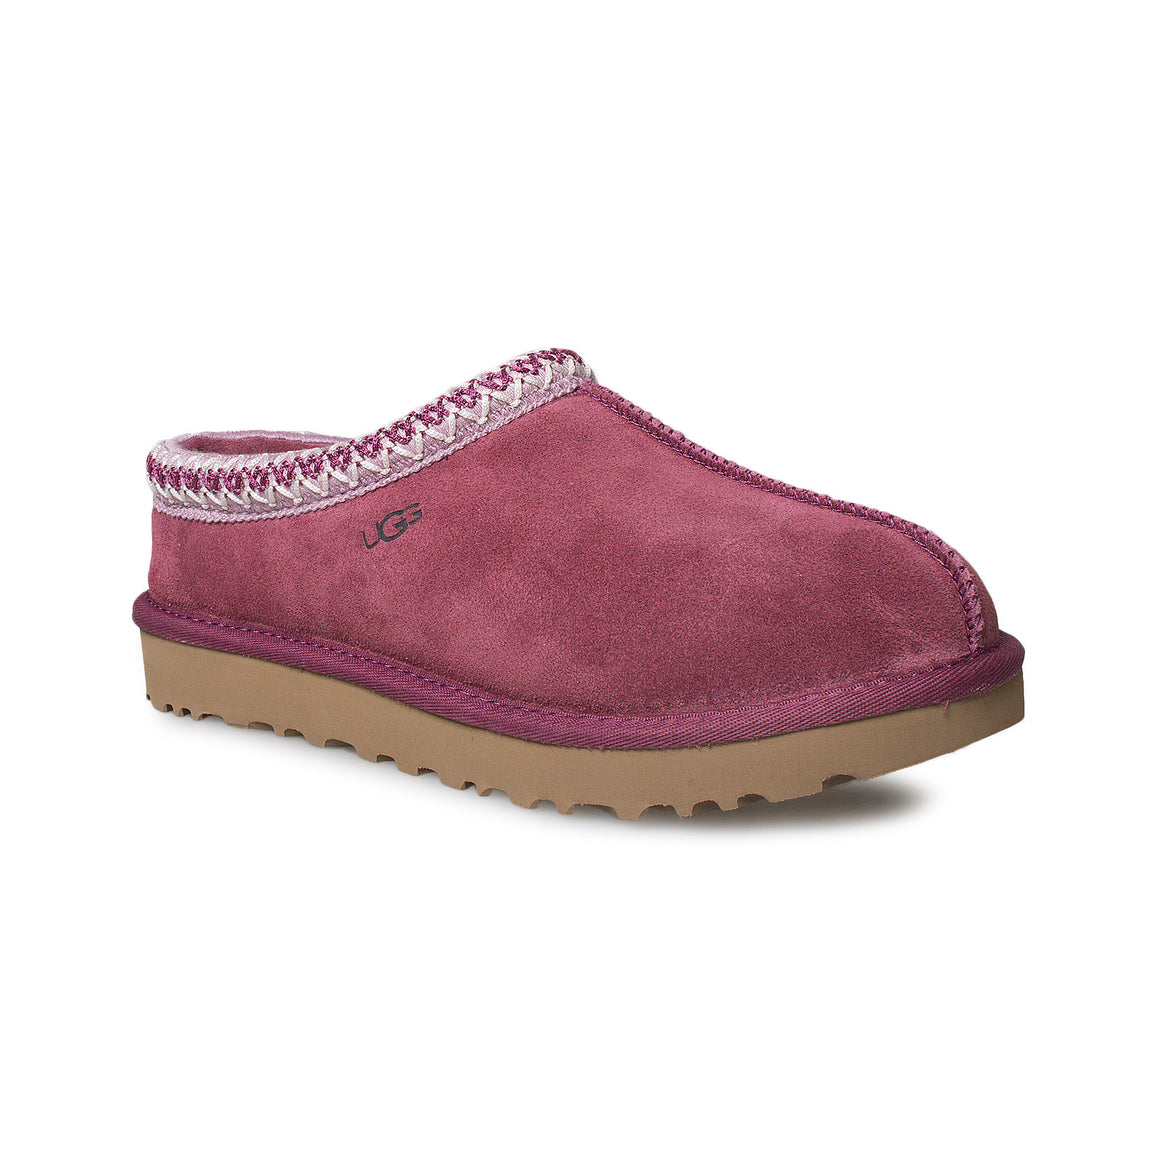 UGG Tasman Bougainvillea Slippers - Women's